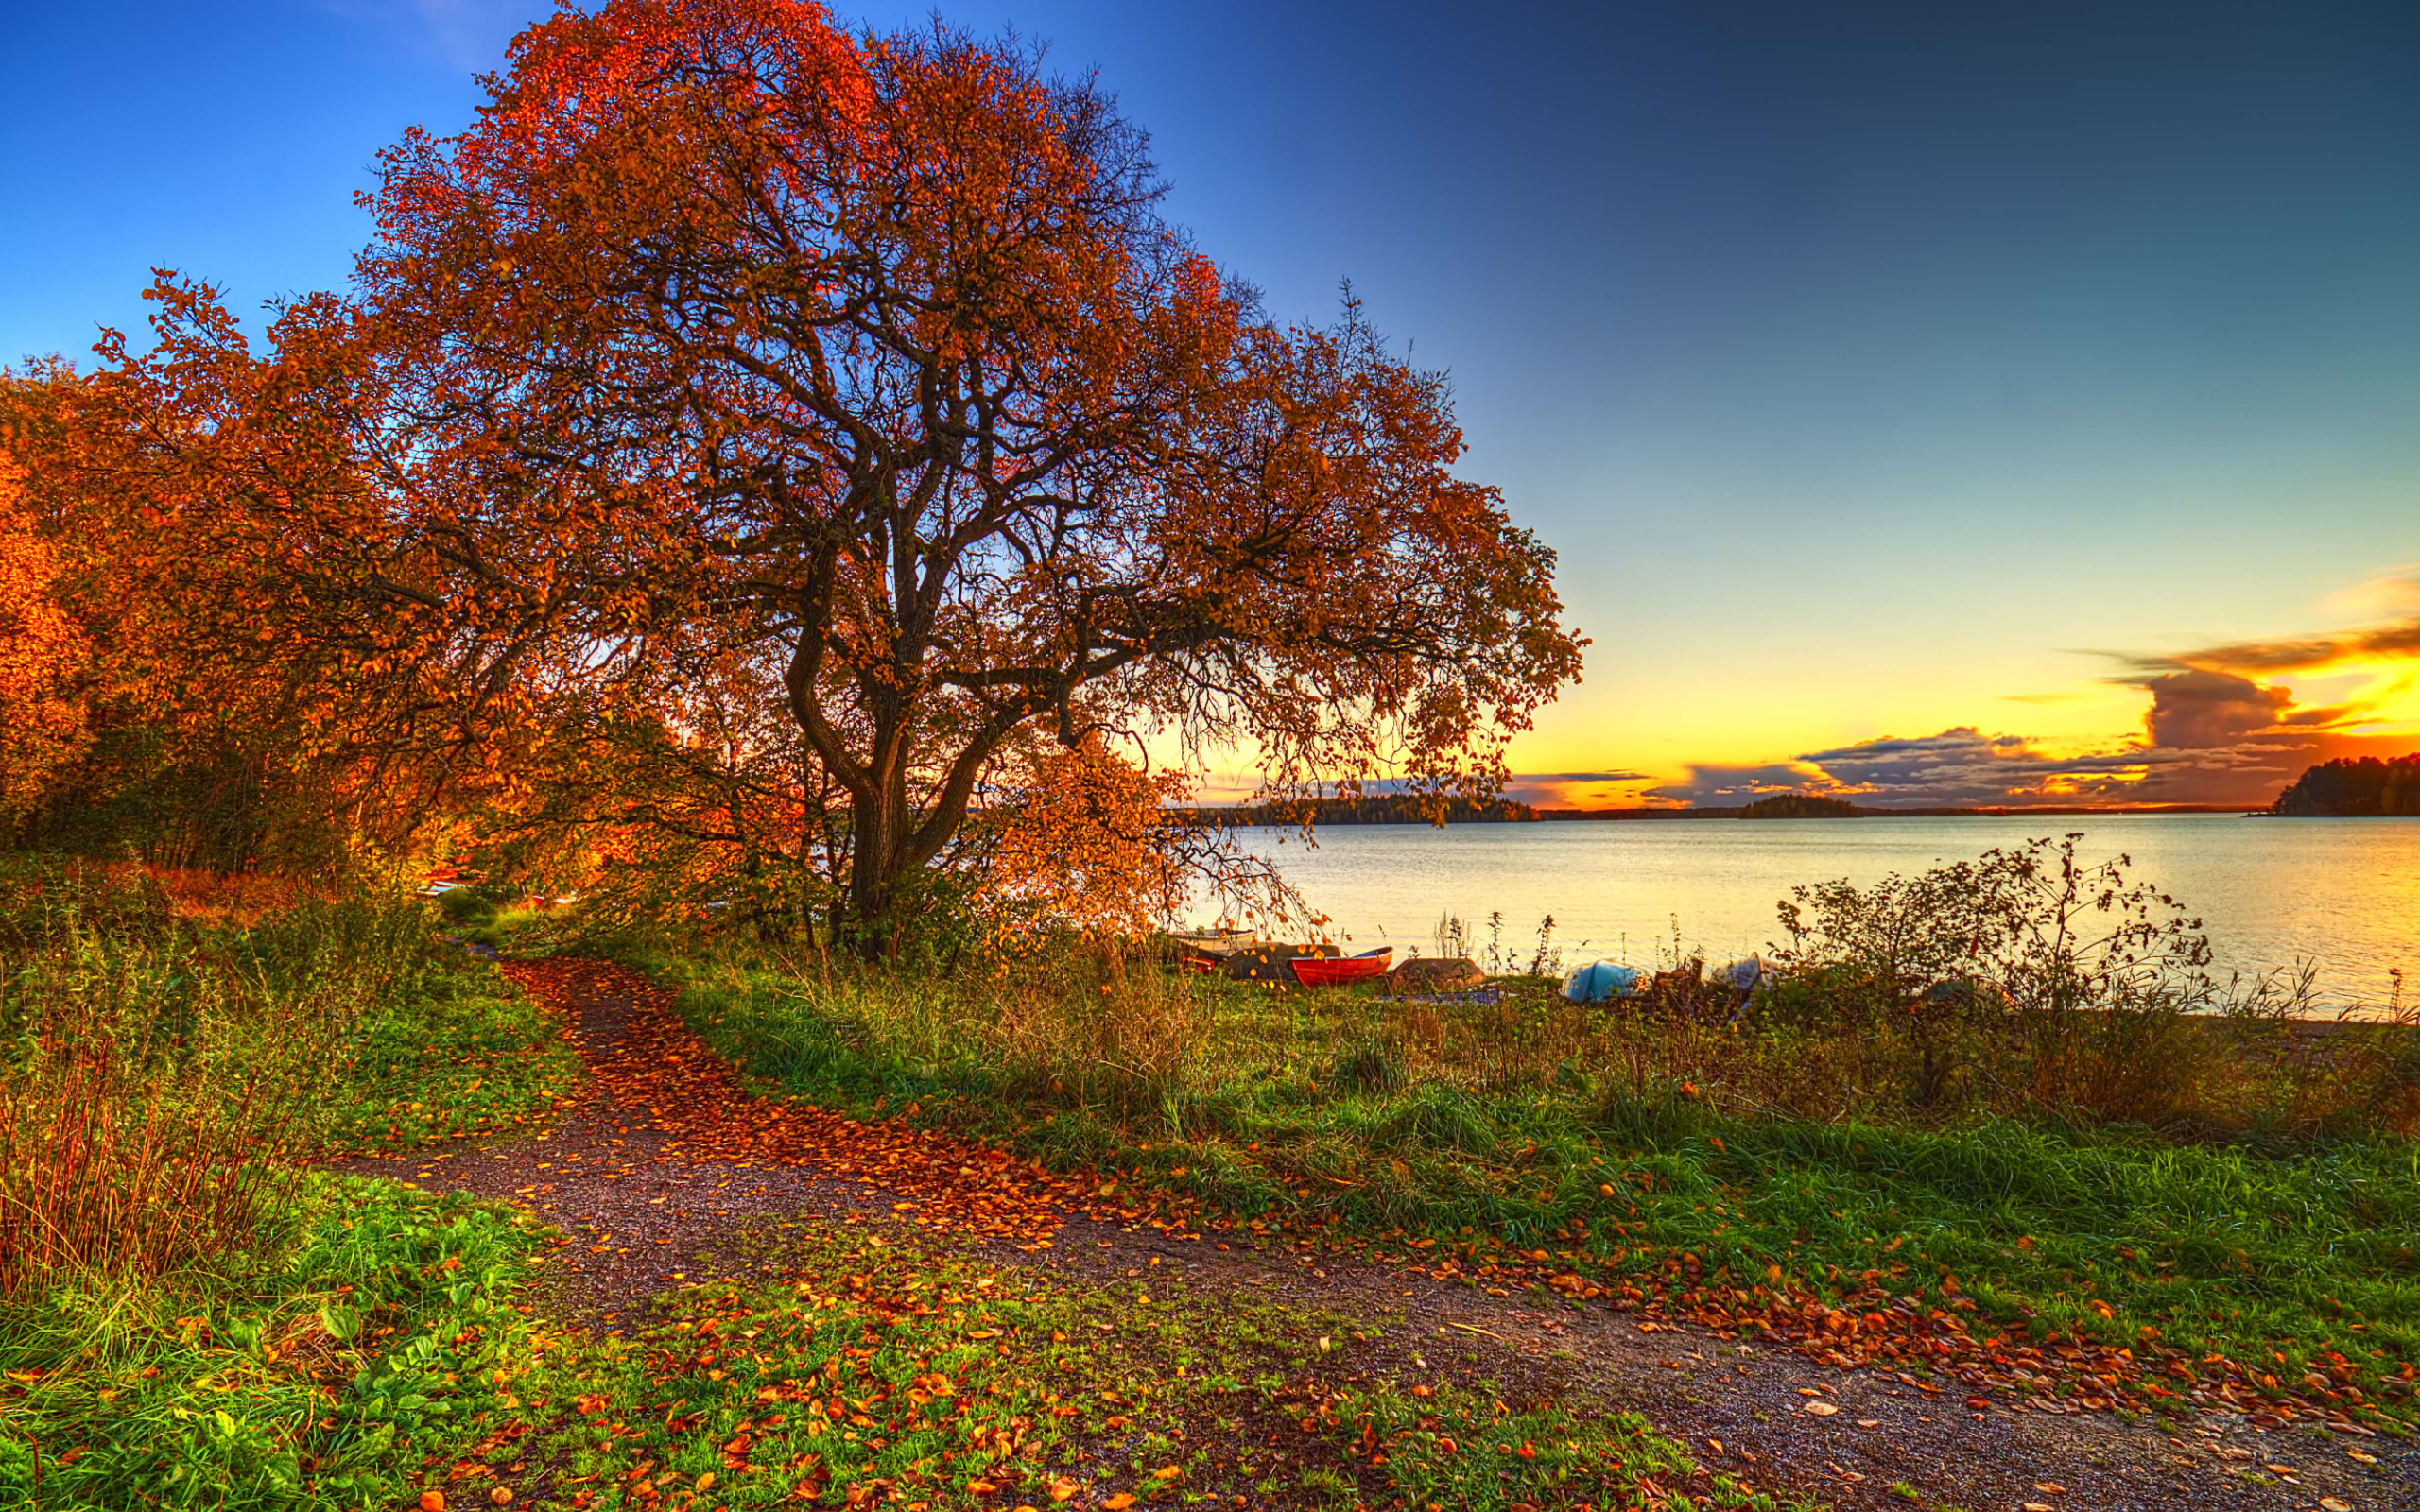 Beautiful Fall Wallpaper Download Free – Free wallpaper download